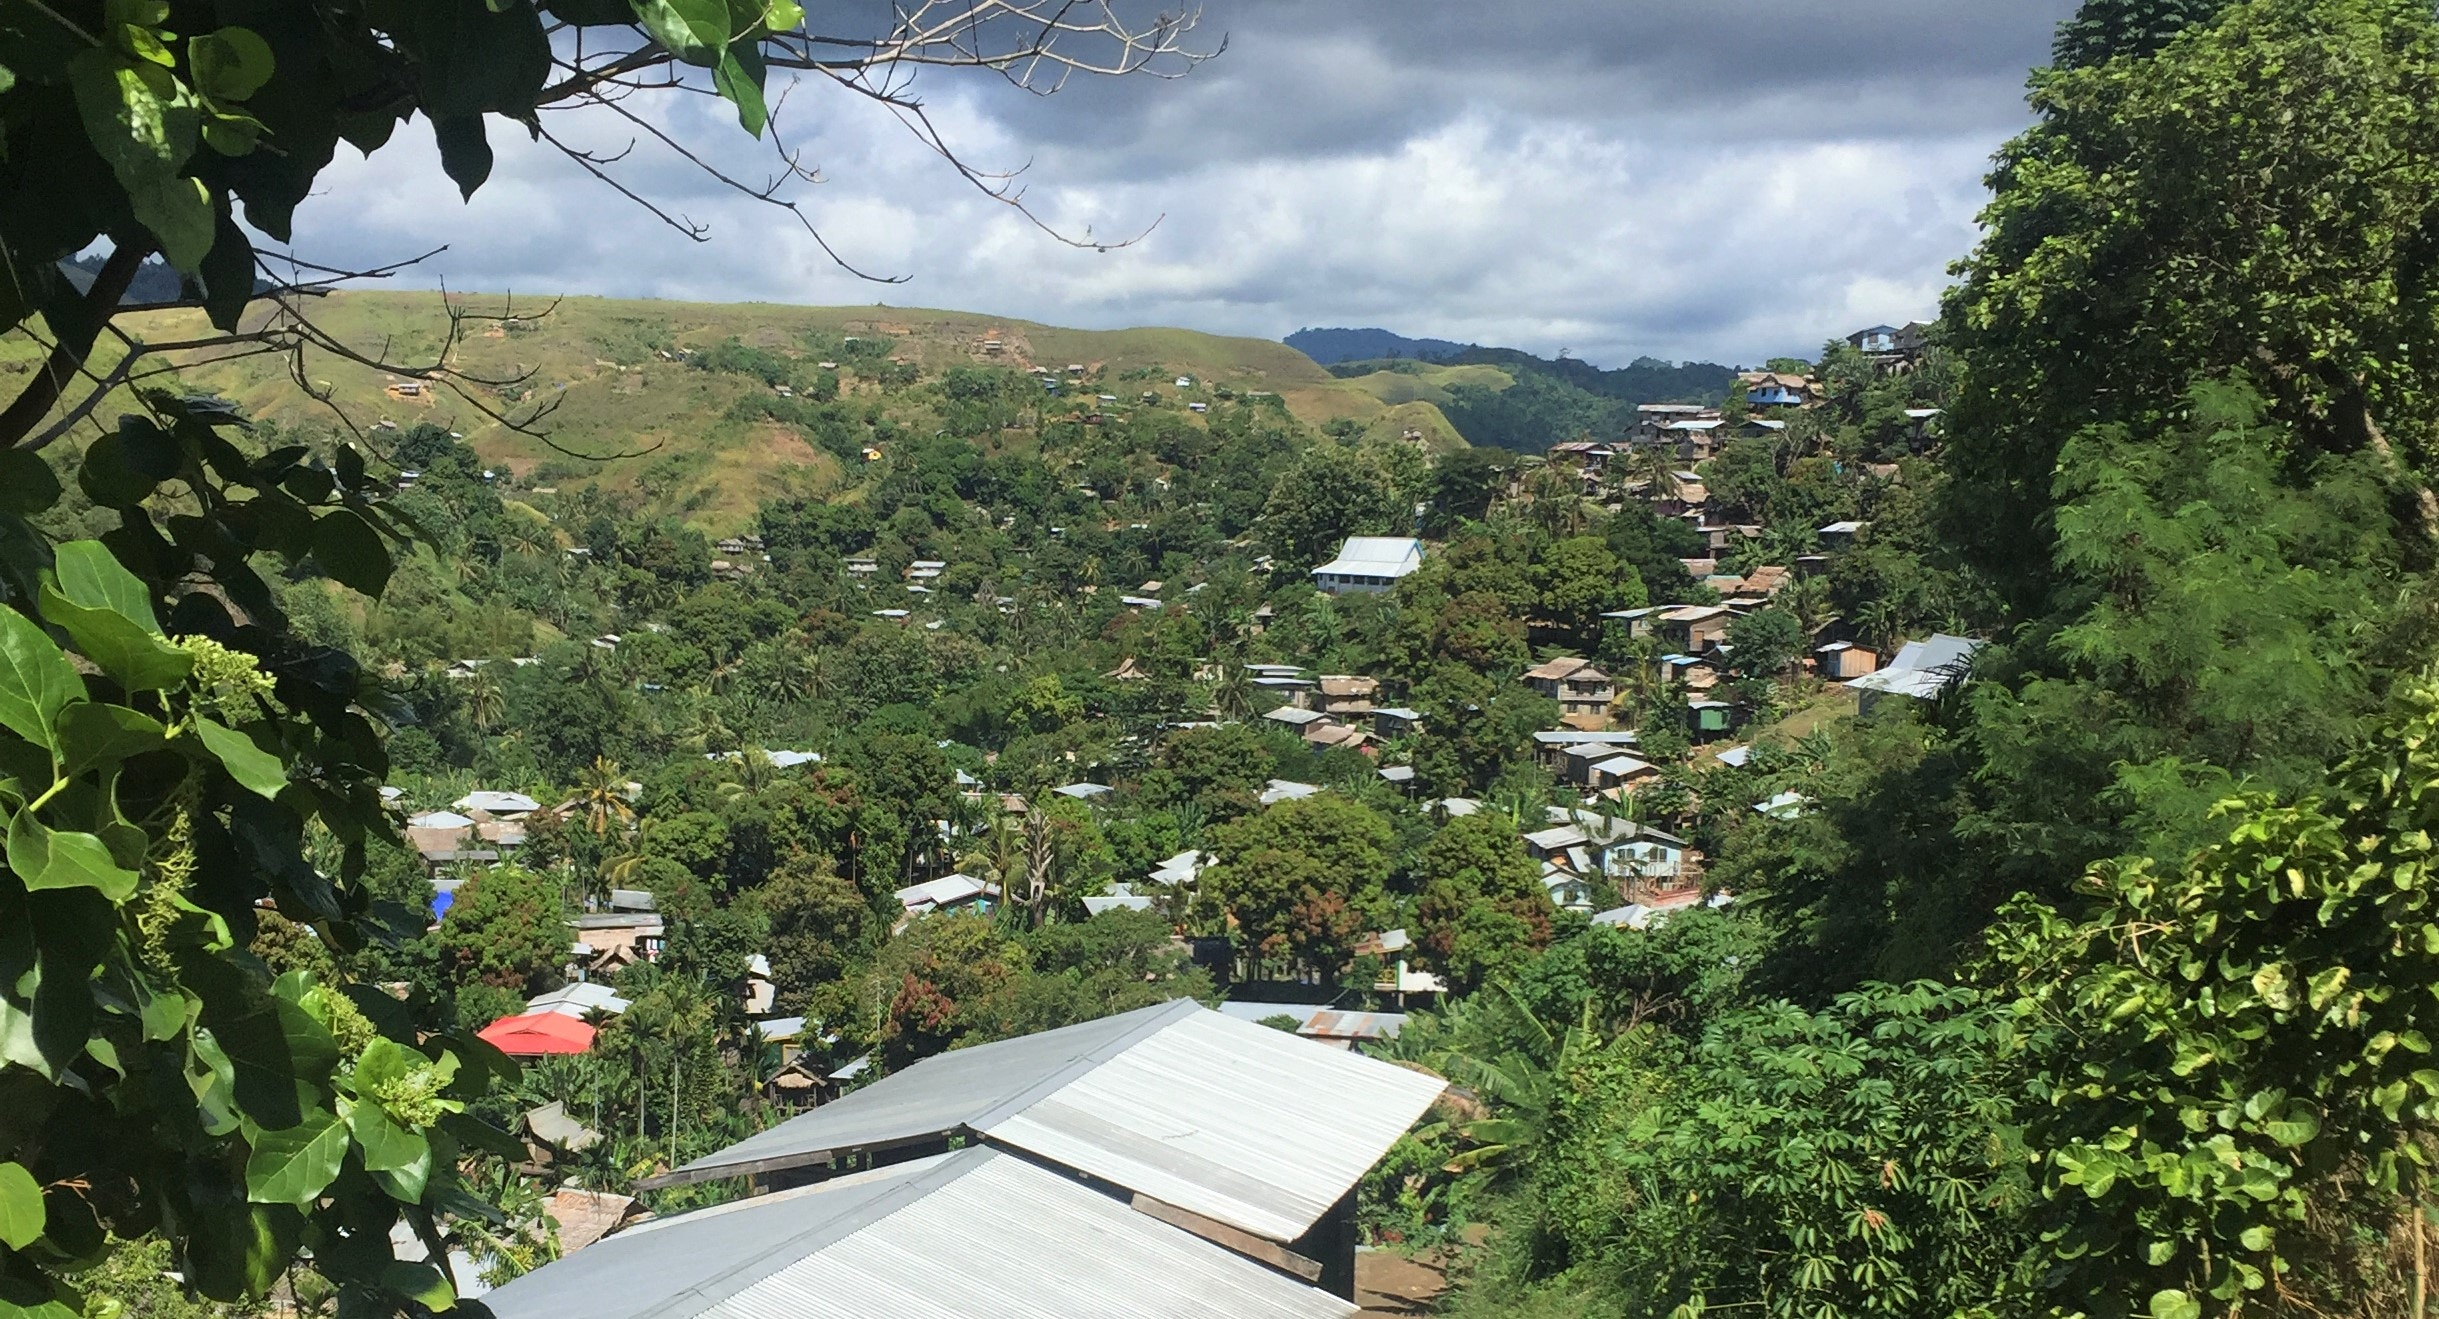 Pacific island cities call for a rethink of climate resilience for the most vulnerable